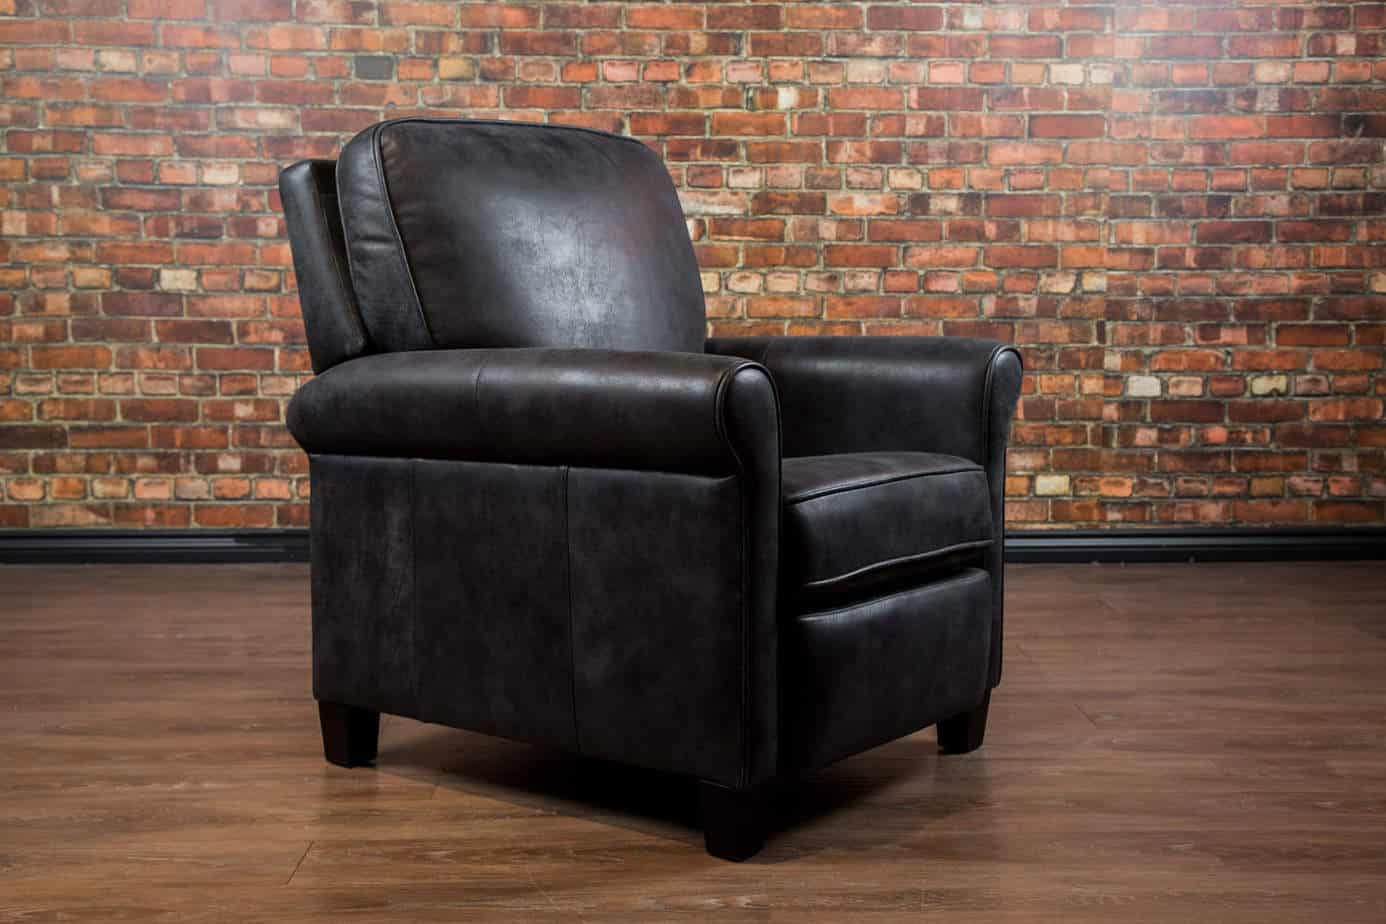 The Chicago Leather Reclining Chair Collection Canada S